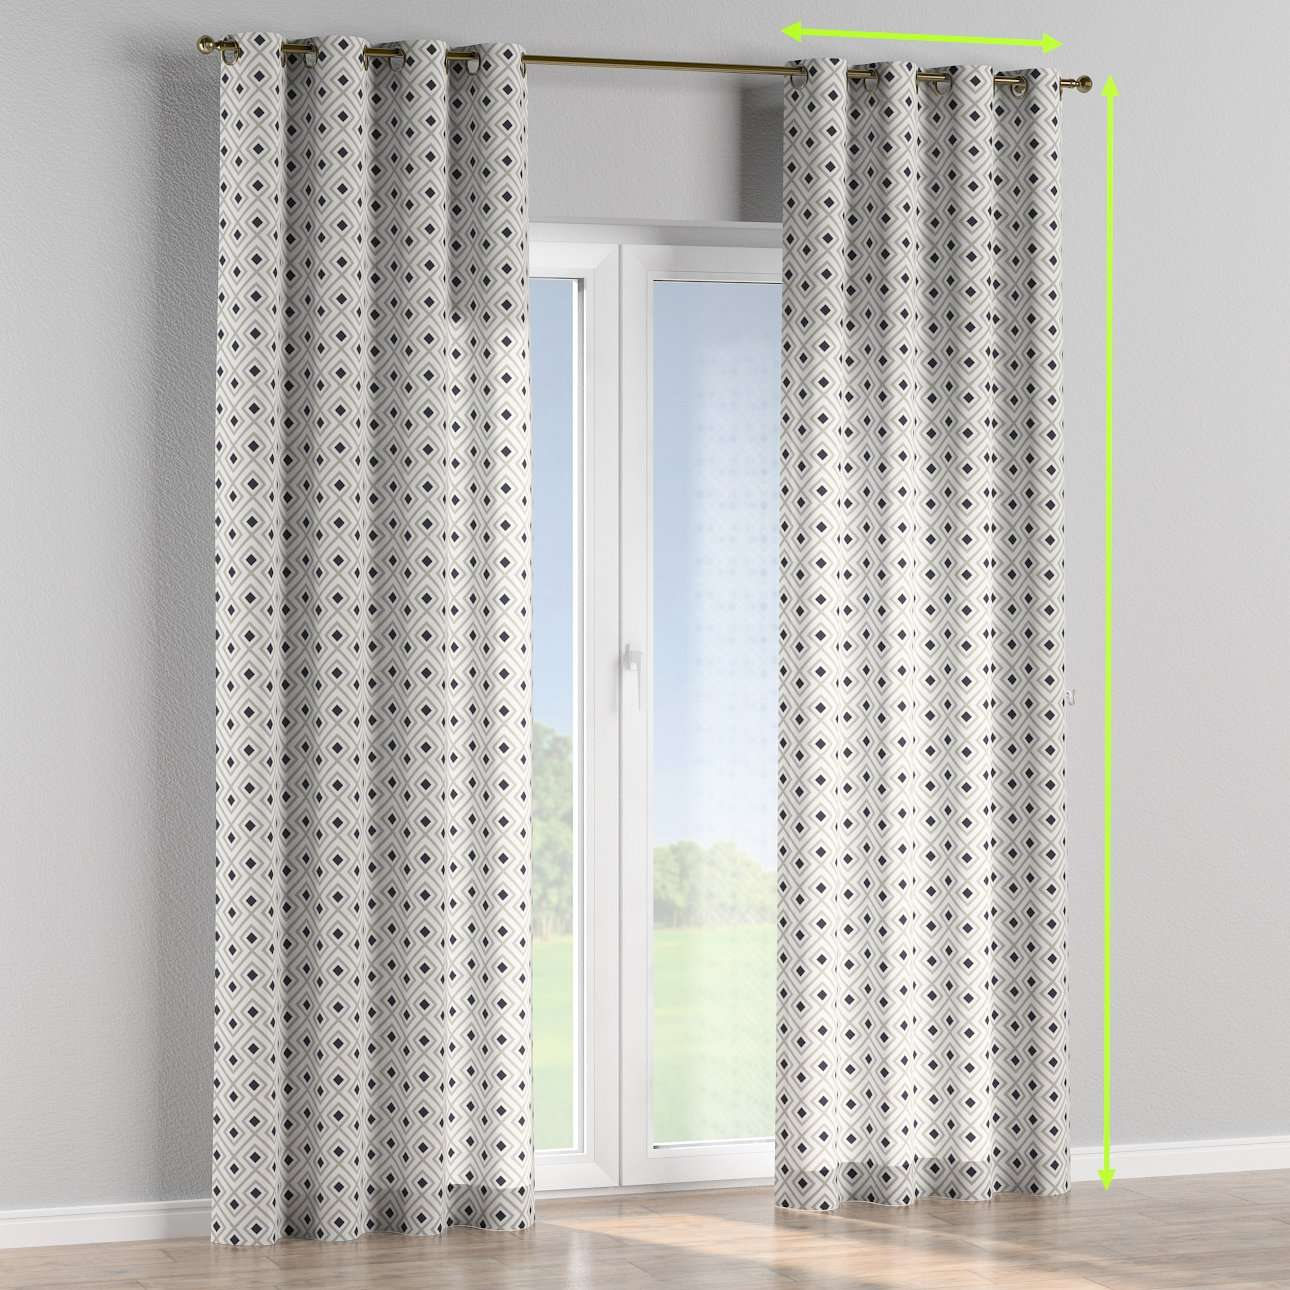 Eyelet curtains in collection Geometric, fabric: 141-44